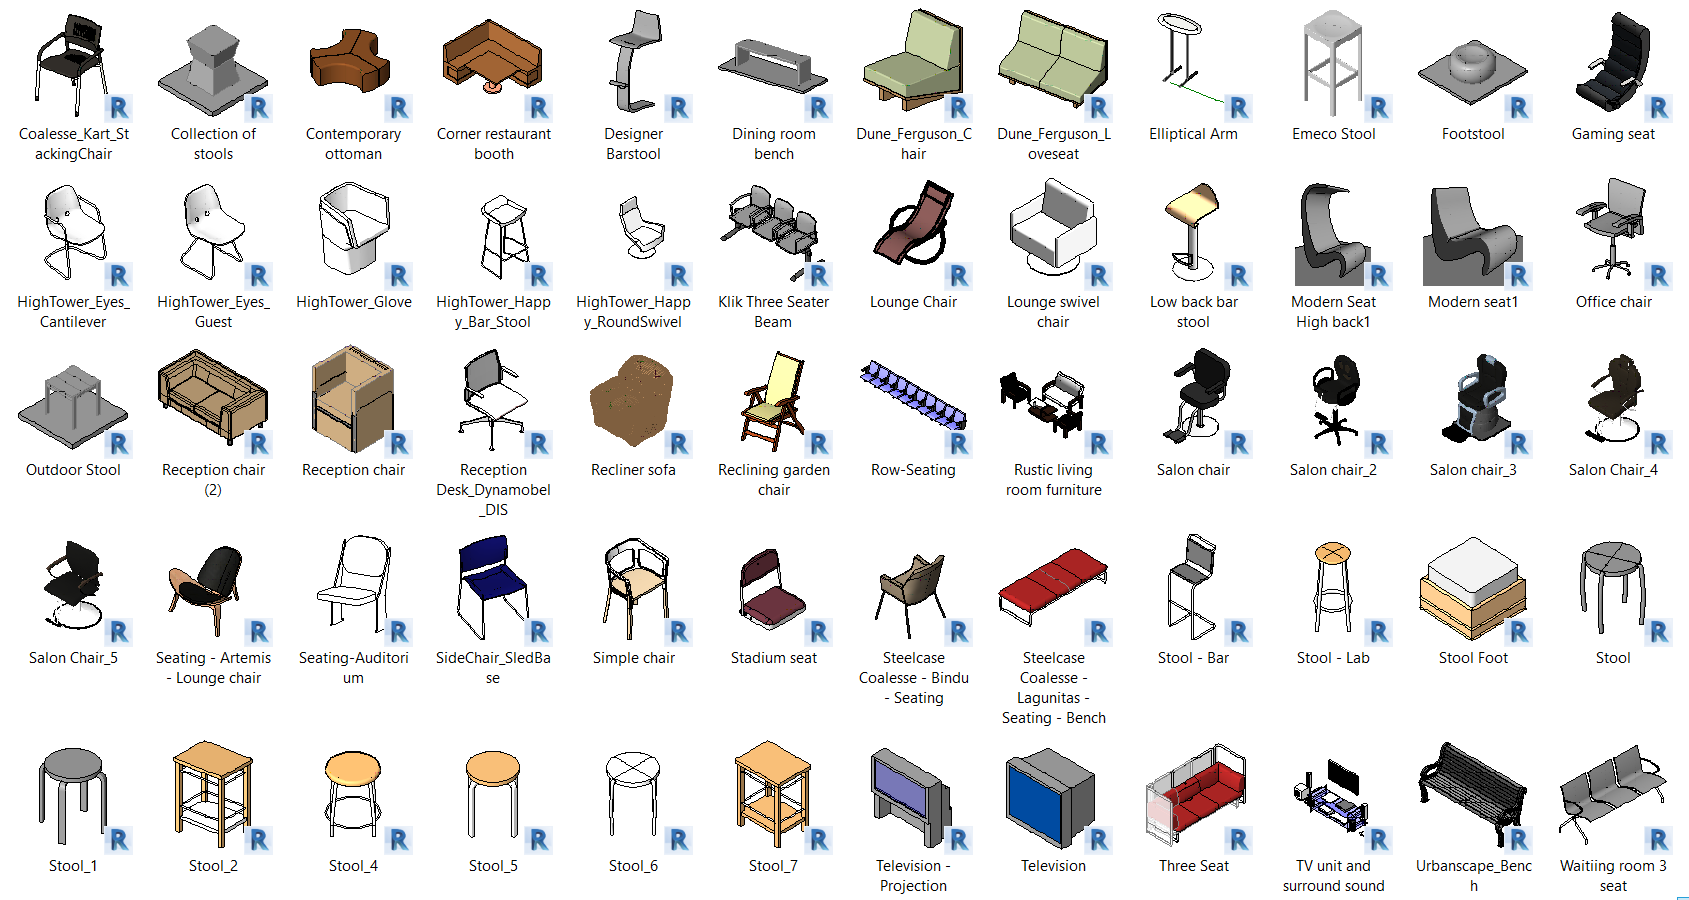 Furniture - Seating 2 Gallery.PNG